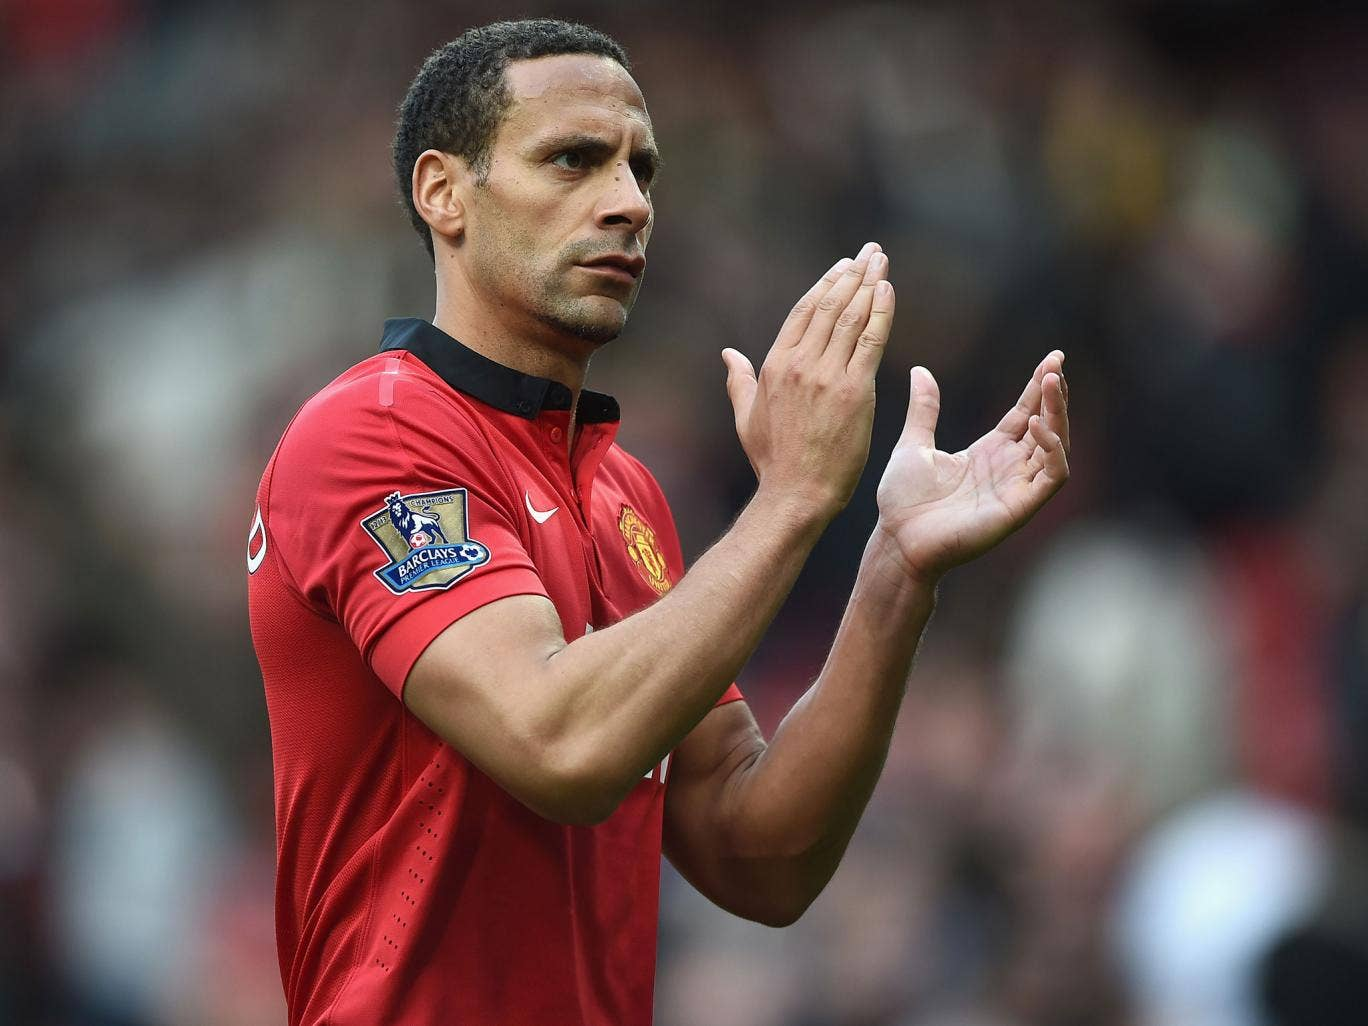 Rio Ferdinand helped United win six league titles, two League Cups, one Champions League and a Club World Cup